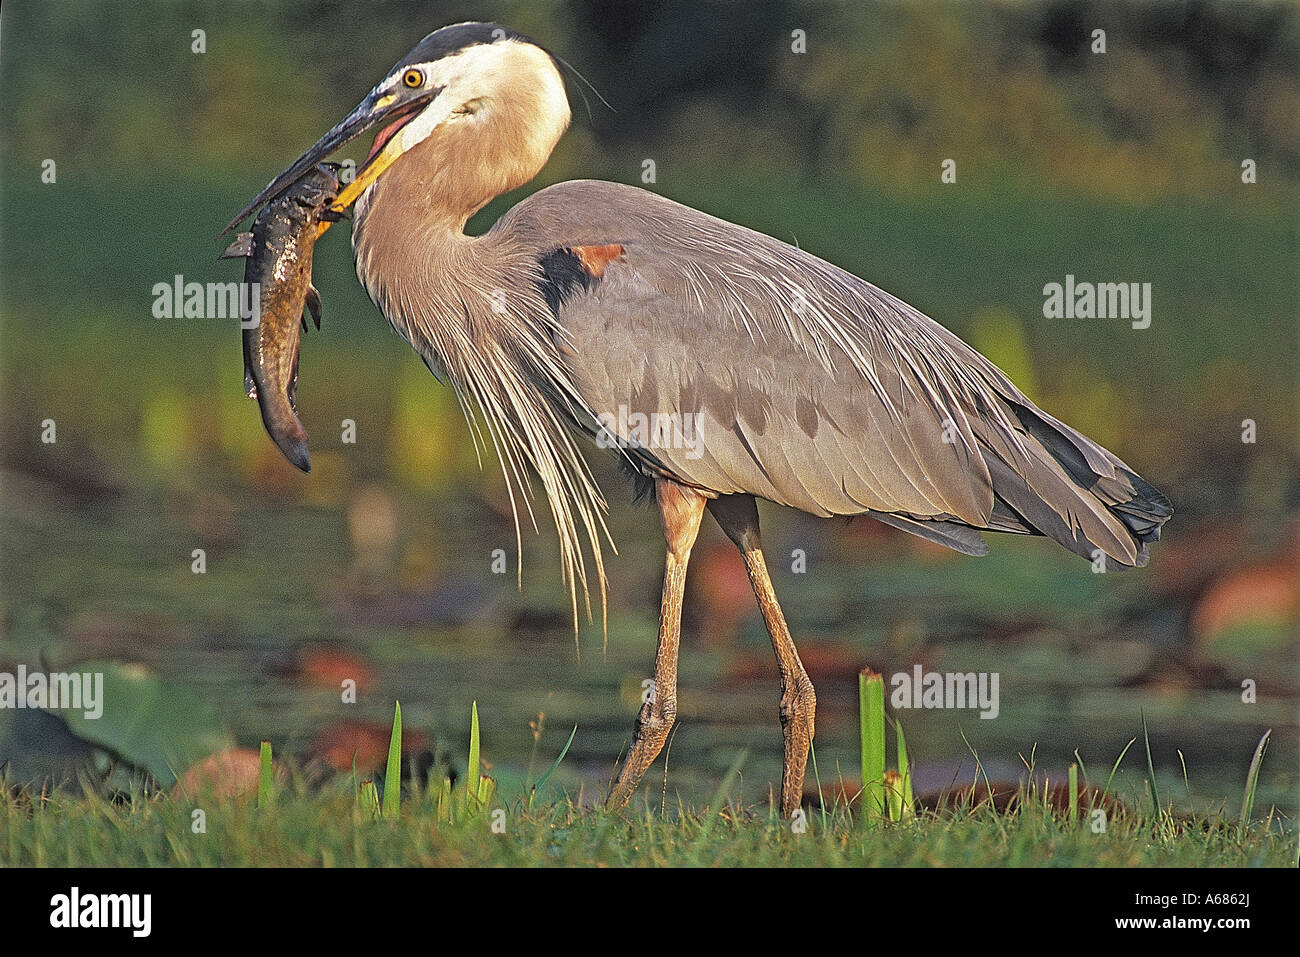 Great Blue Herron eating catfish near lily pond in Kenilwroth ...